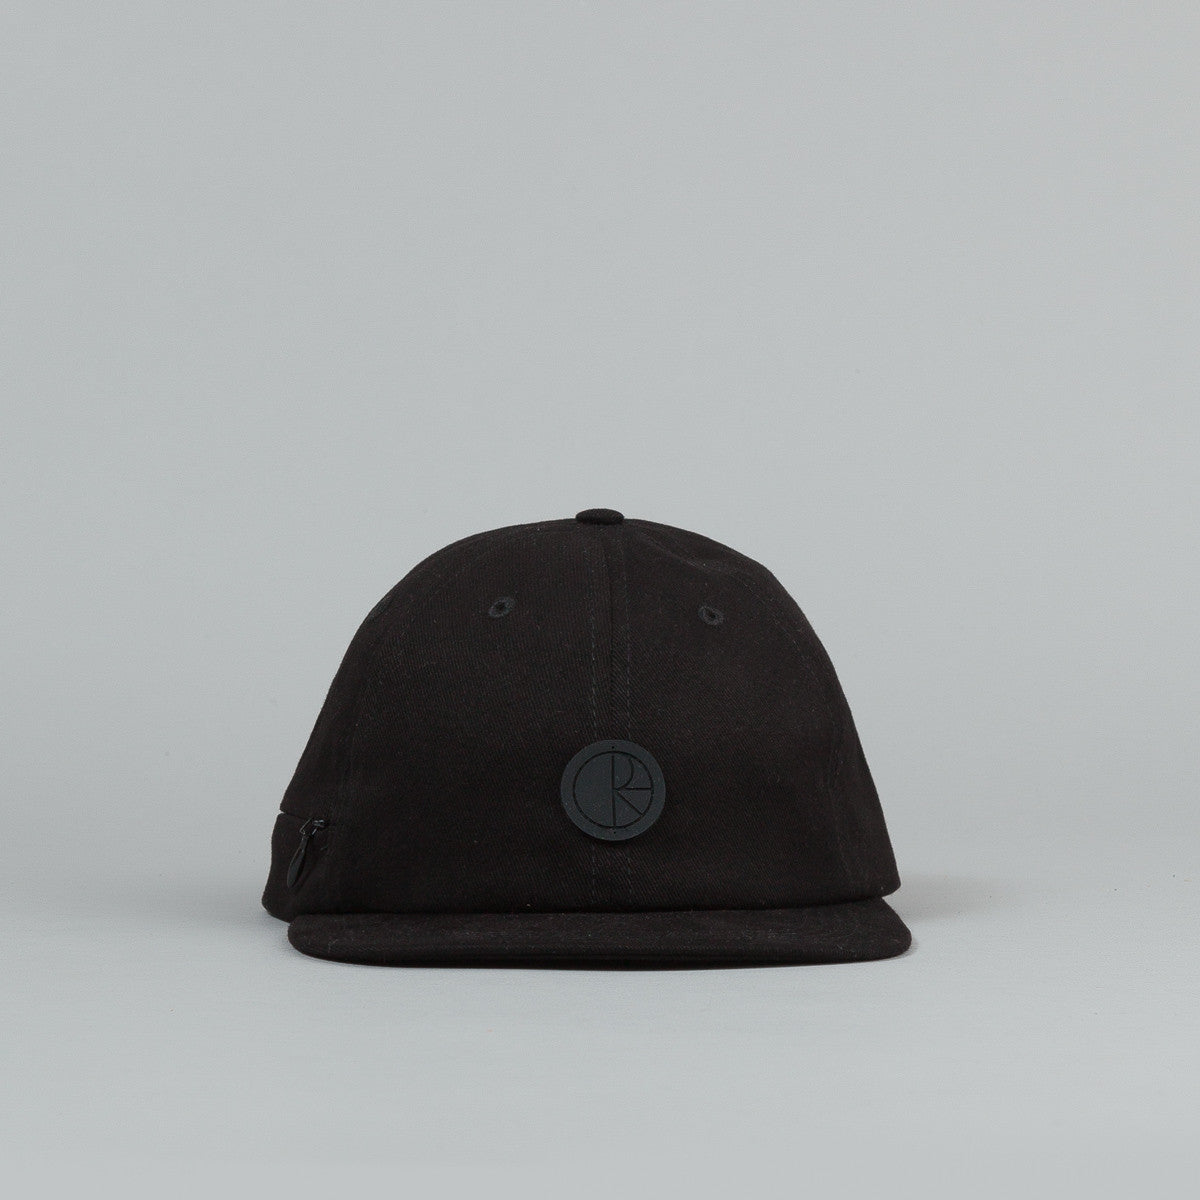 Polar Stash Pocket Cap - Black / Black